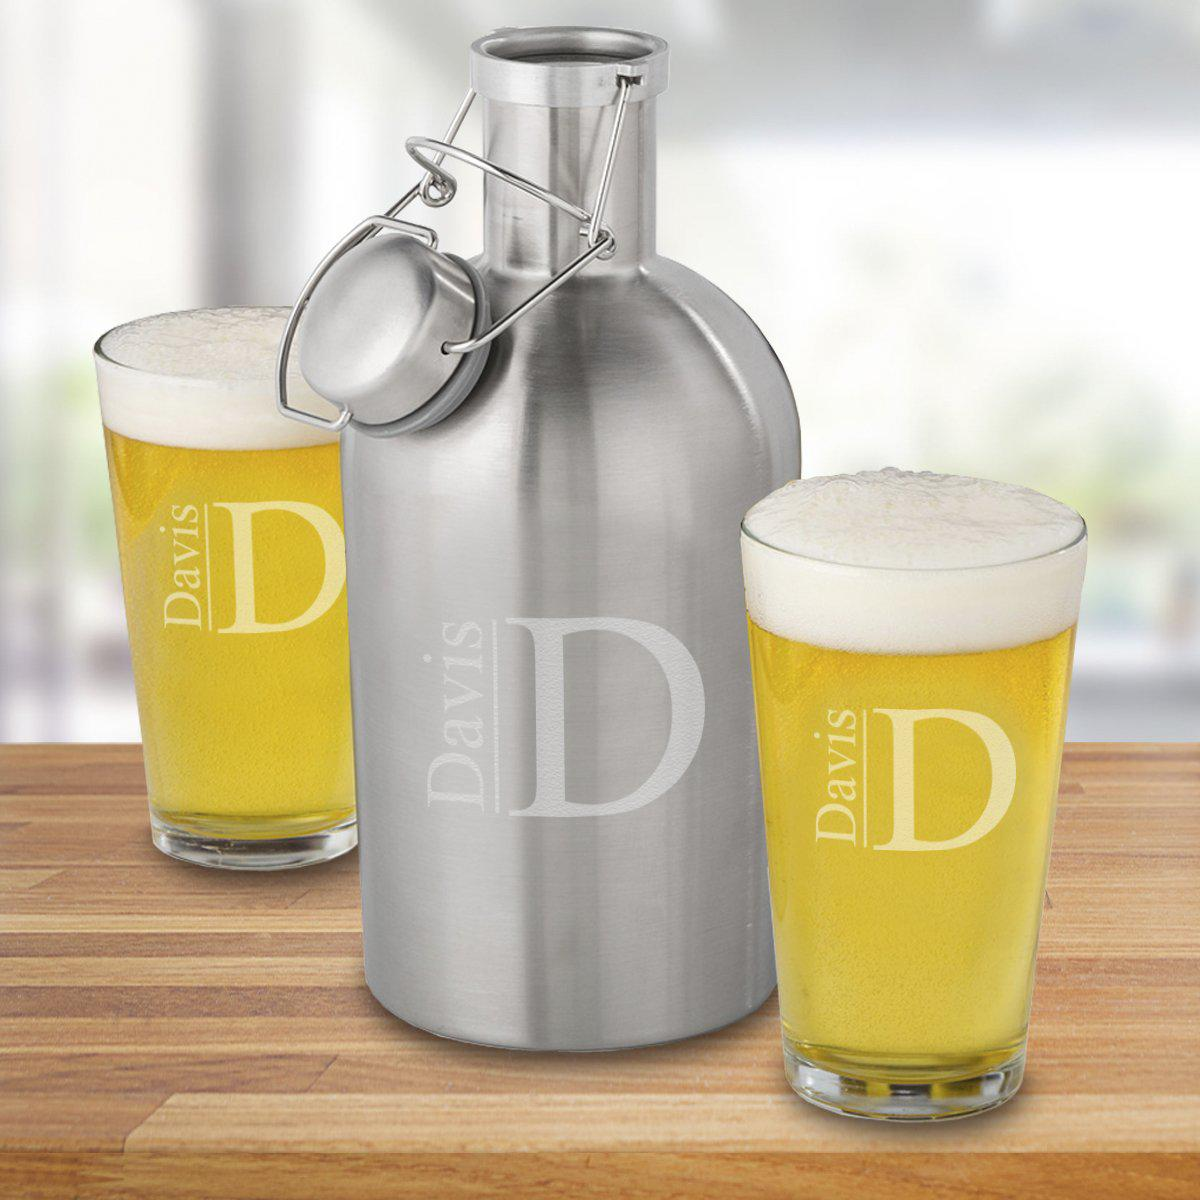 Personalized Stainless Steel Growler Set with 2 Pint Glasses